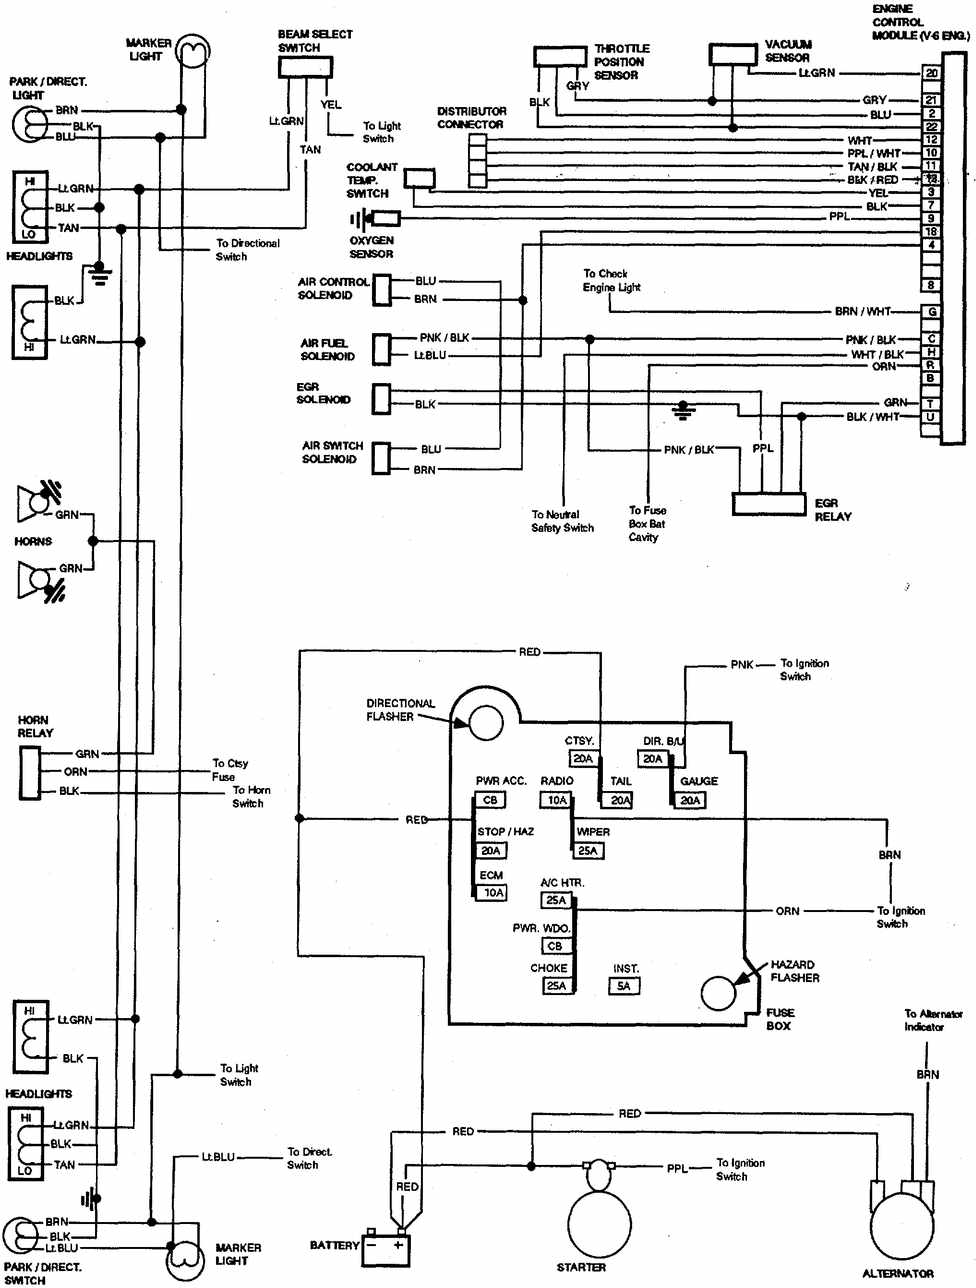 cruise control wiring diagram image about wiring diagram and